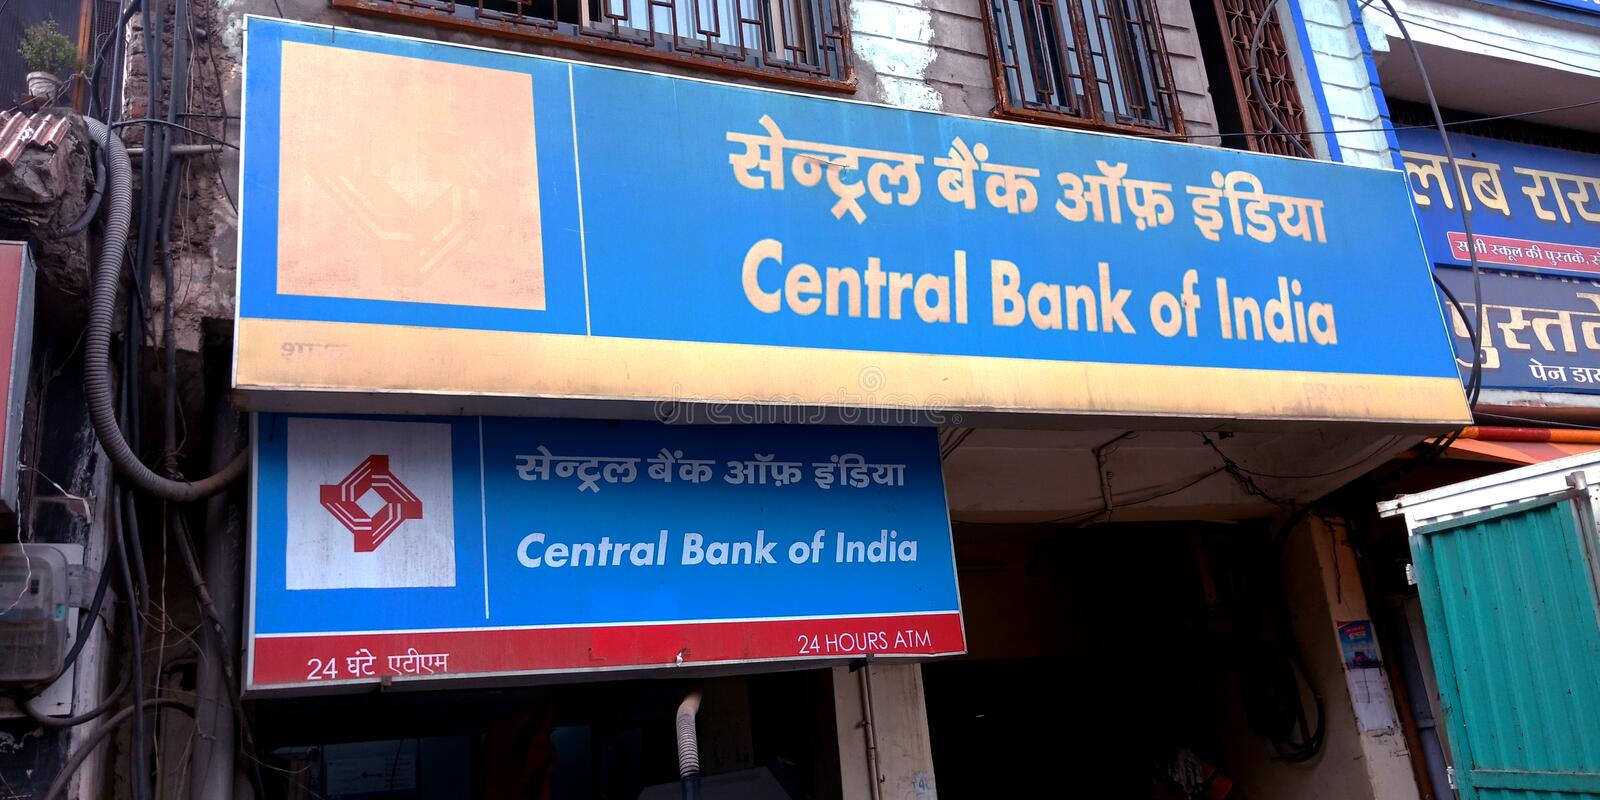 Central bank of India branch at district jabalpur in India. Panjab, national, union, life, insurance, corporation, office, baroda, indian, finance, madhya royalty free stock photography